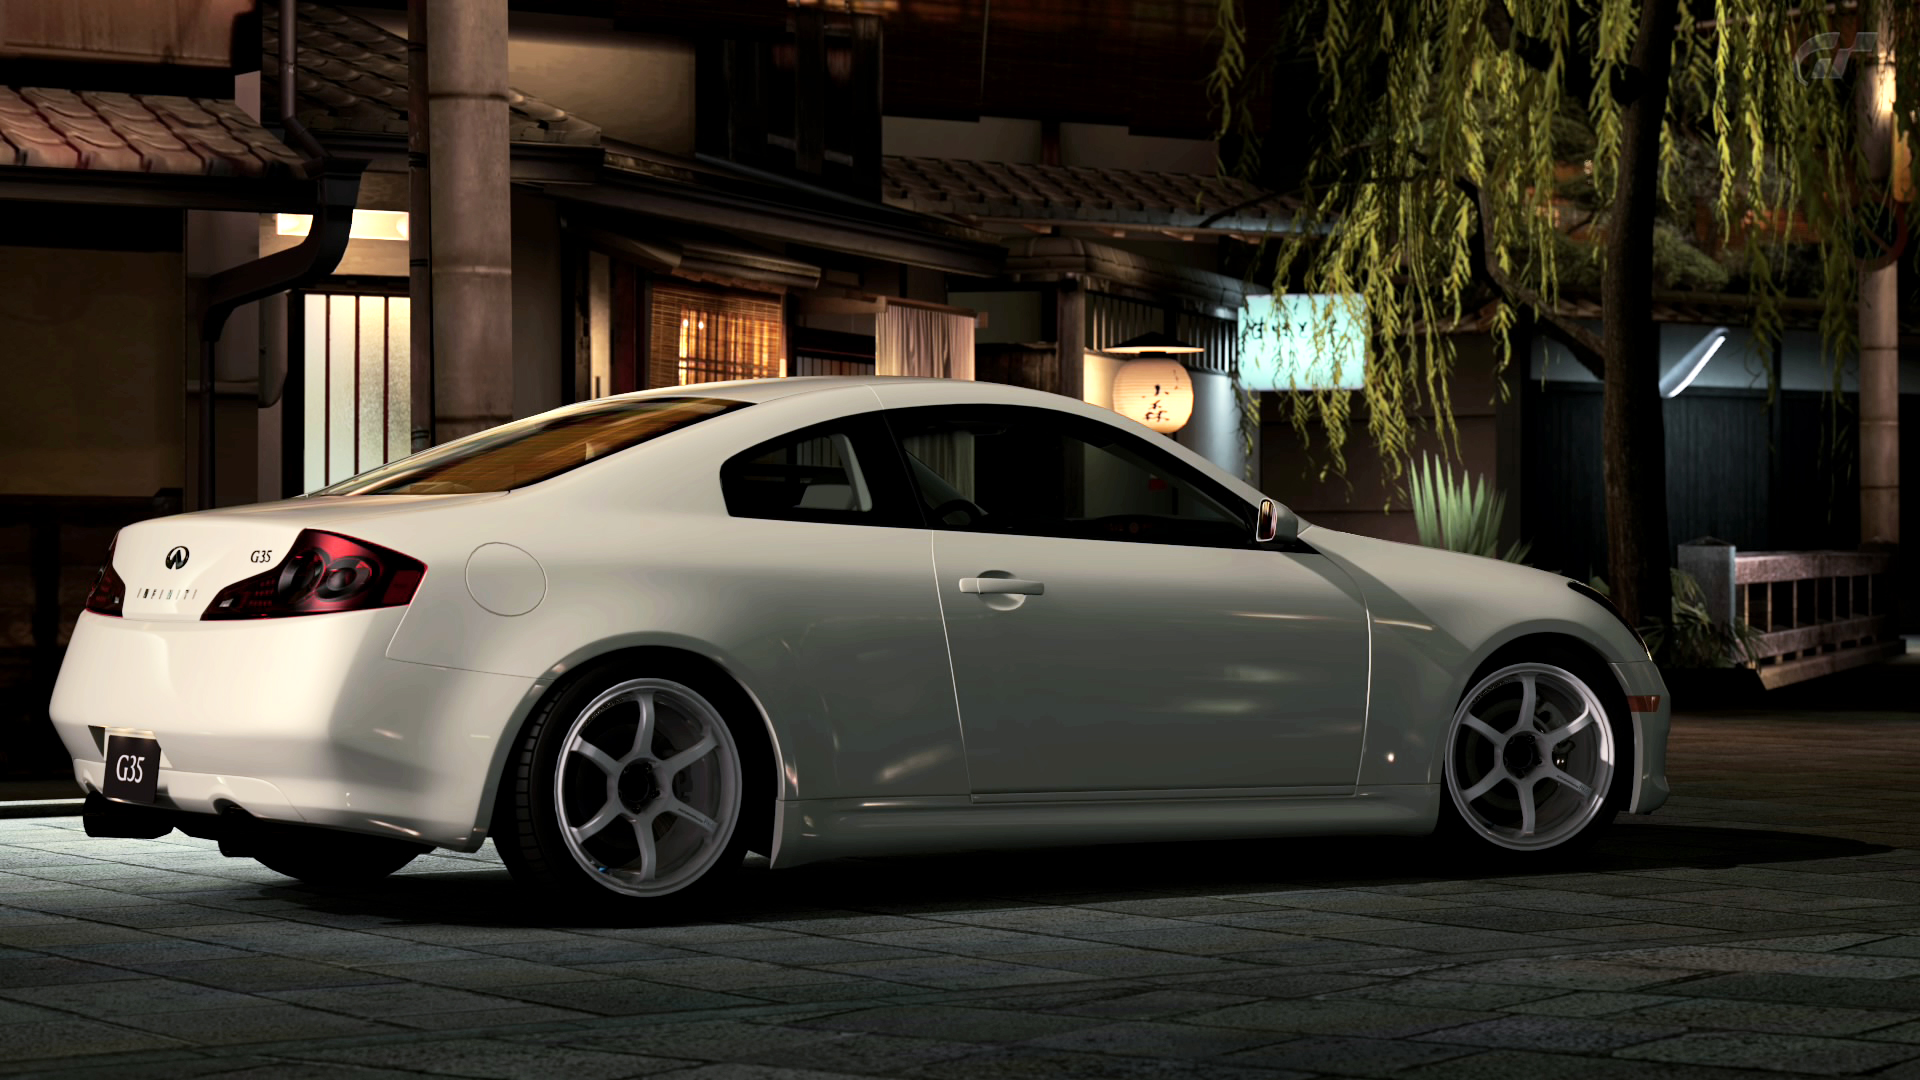 99 reviews infiniti g35 coupe sport on margojoyo 2006 infiniti g35 sport coupe gran turismo 5 by vertualissimo on vanachro Gallery